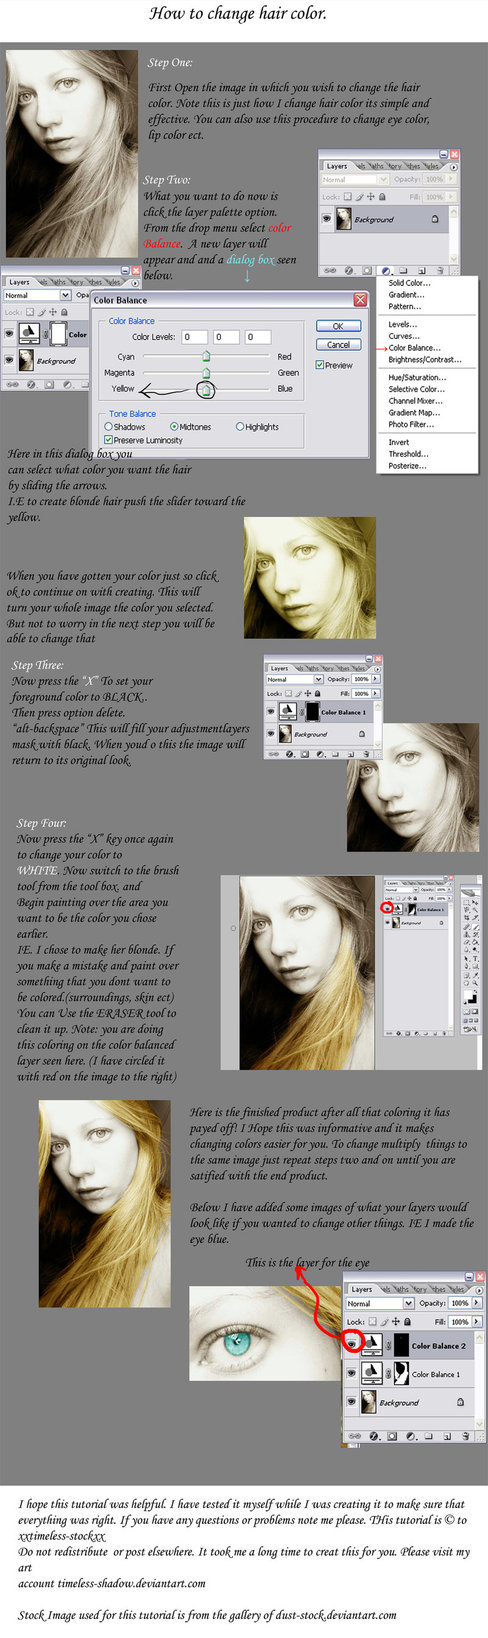 How To Change Hair Color In Photoshop Tutorials Artsy Photoshop